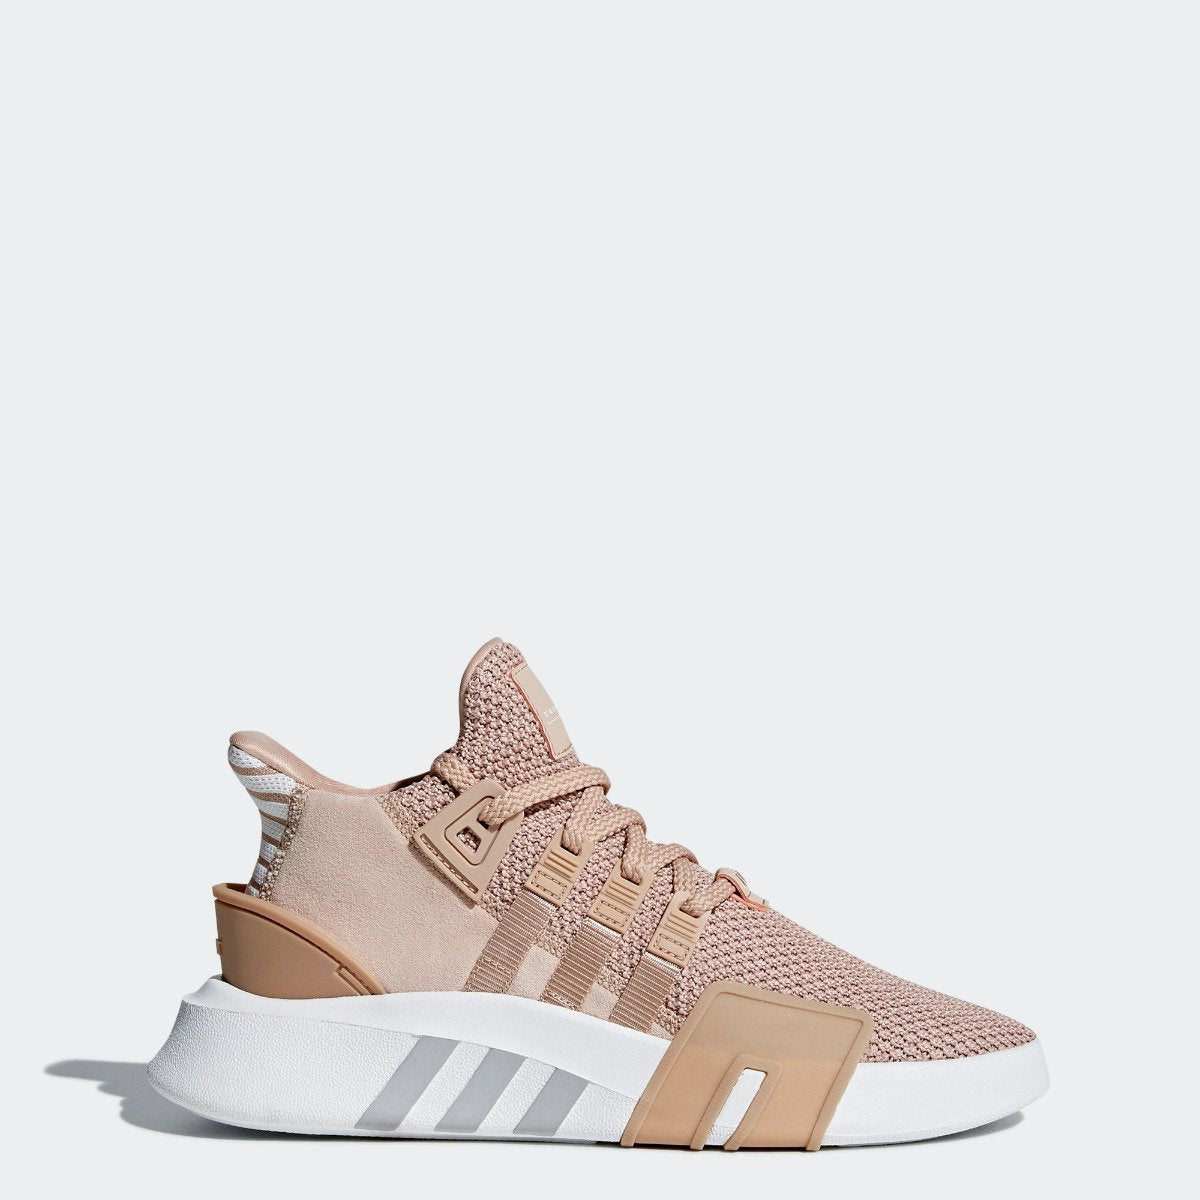 7a3f2d8e5f52 Women s adidas Originals EQT ADV Bask Shoes Ash Pearl AC7352 ...